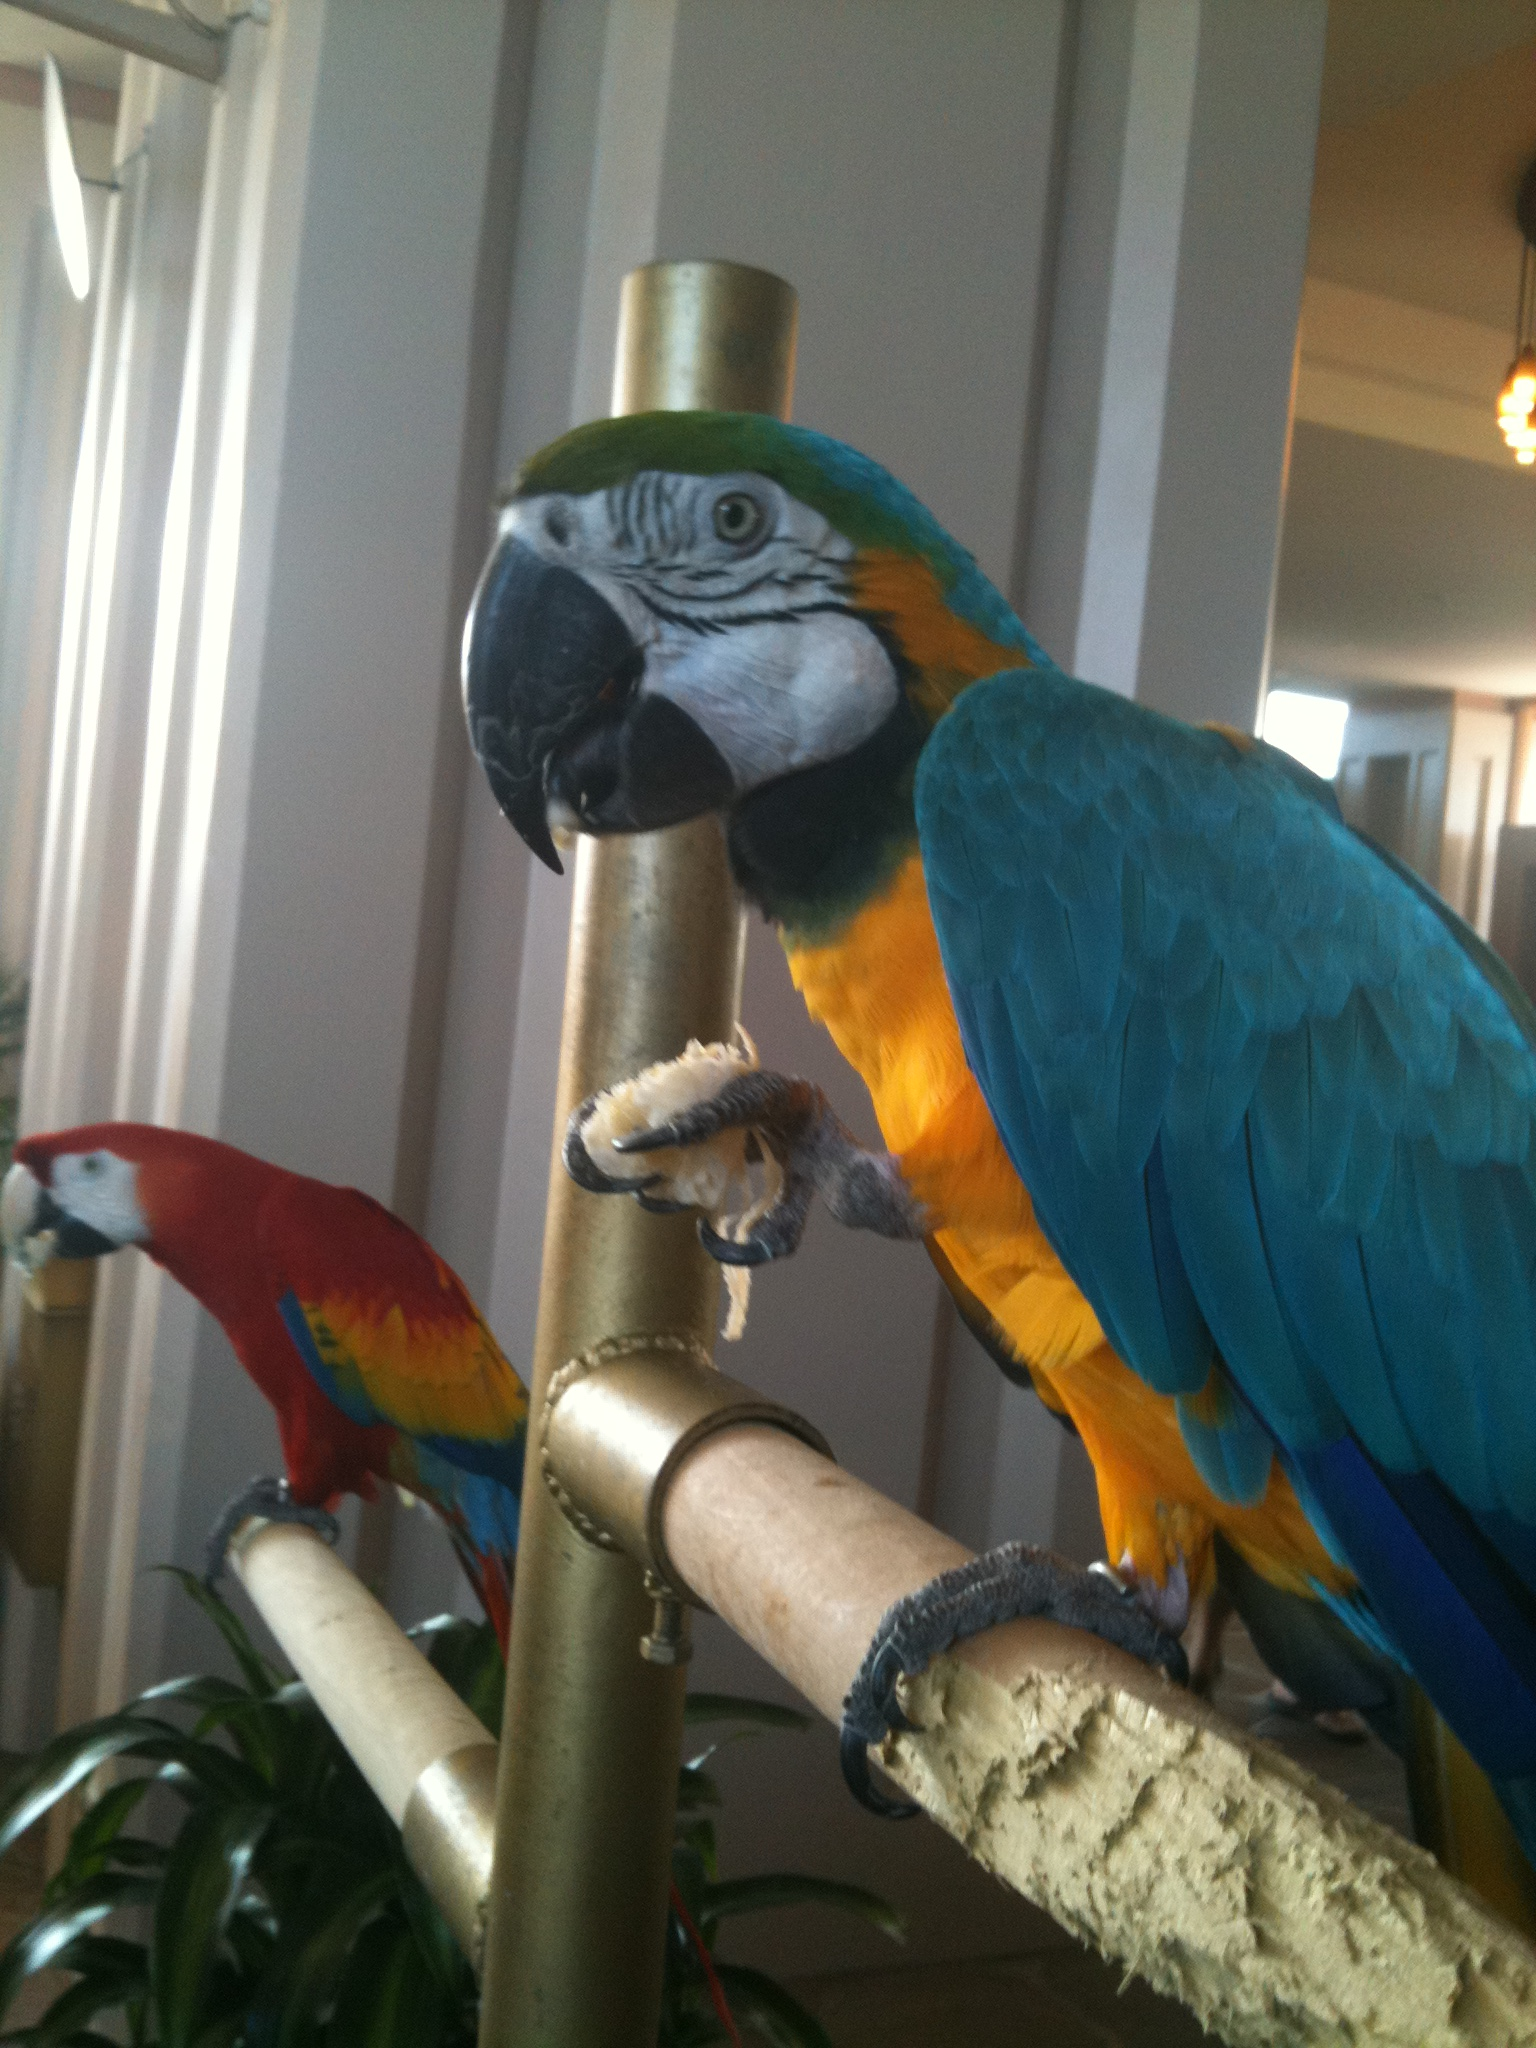 blue-and-gold-red-and-green-macaws-hotel.jpg